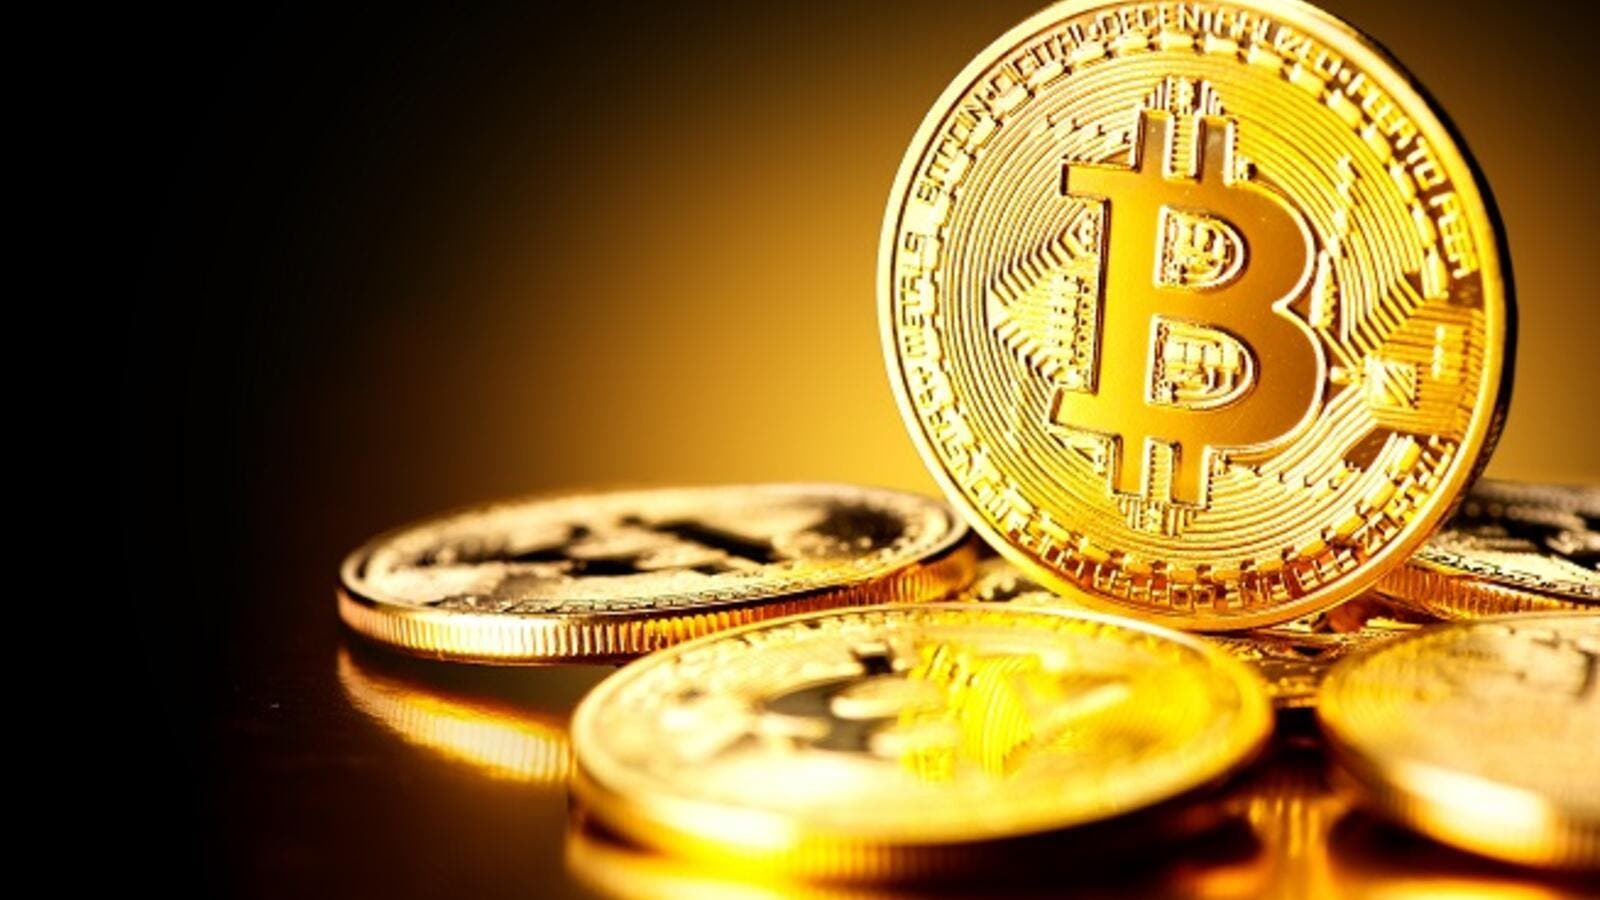 The world's top Muslim finance experts are attempting to determine the validity of the fast emerging financial tools, questioning whether Islamic financial firms can invest in the cryptocurrencies alongside the rest of the world. (Shutterstock)